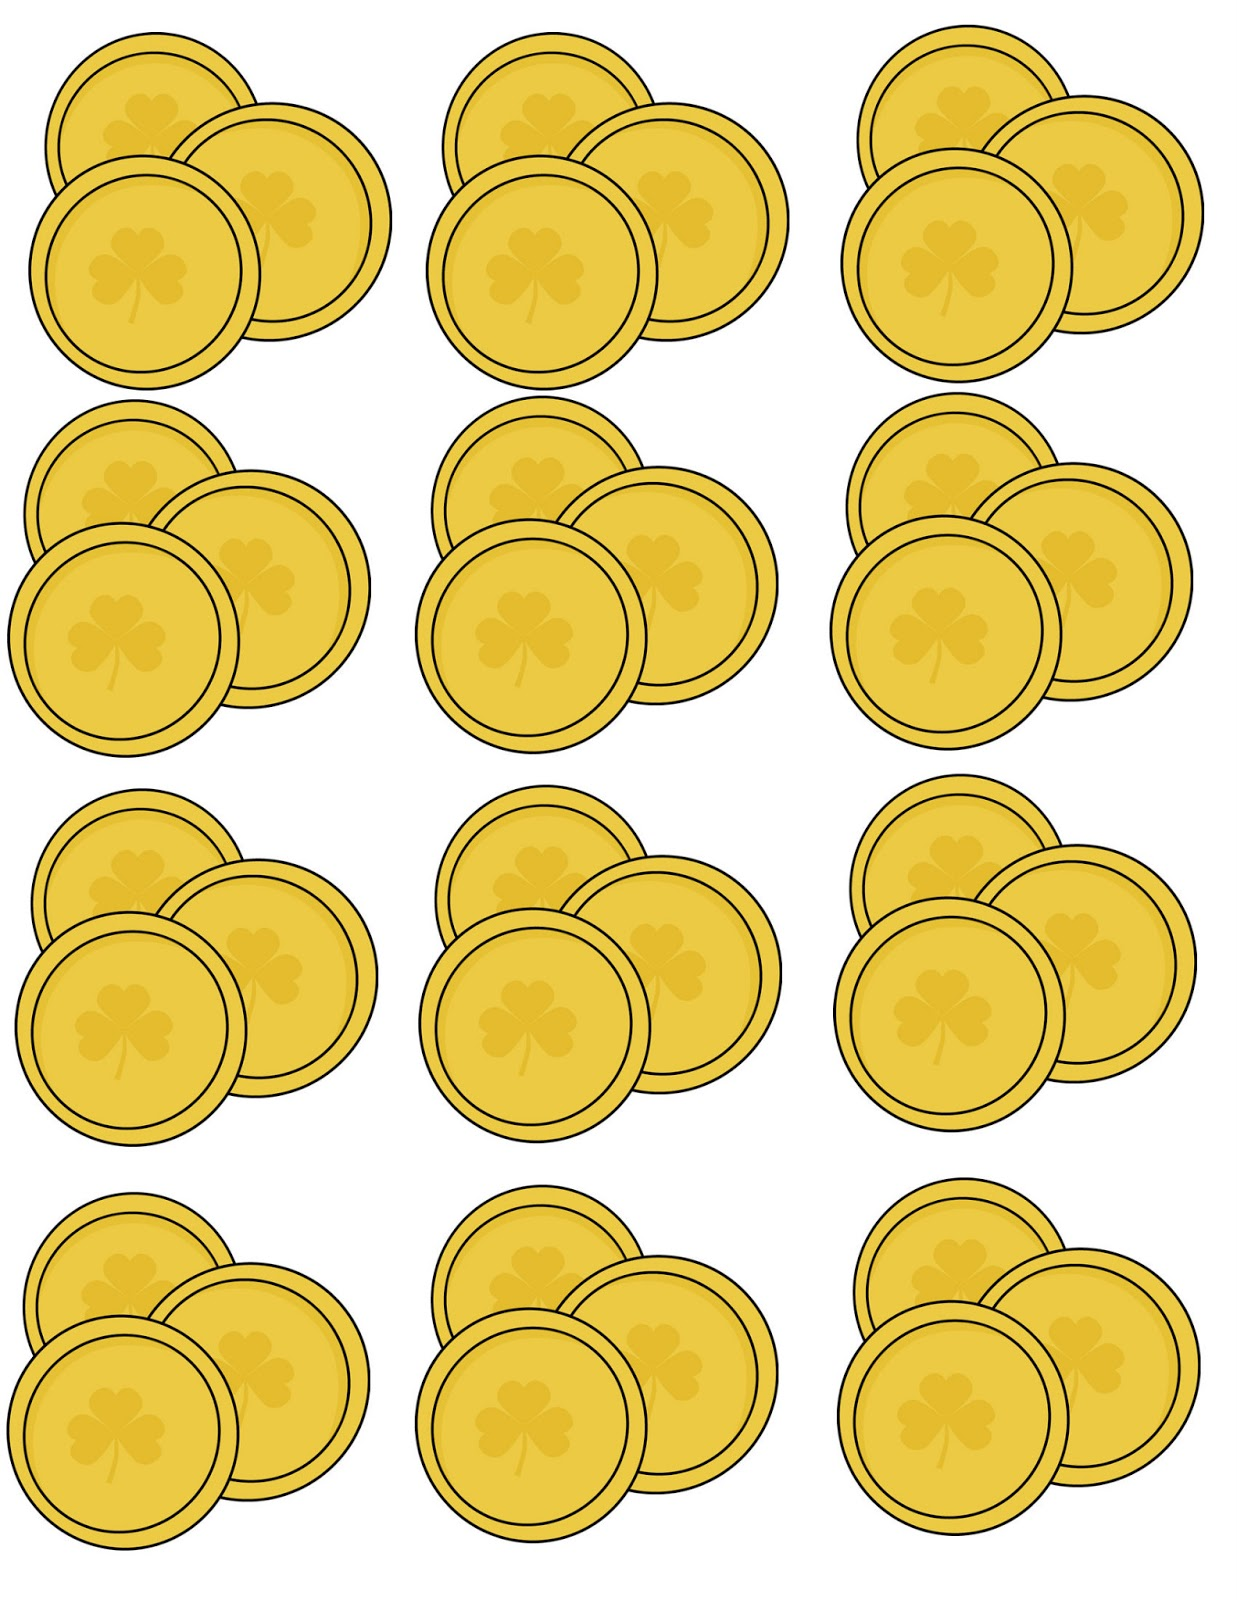 Agile image with regard to gold coin template printable